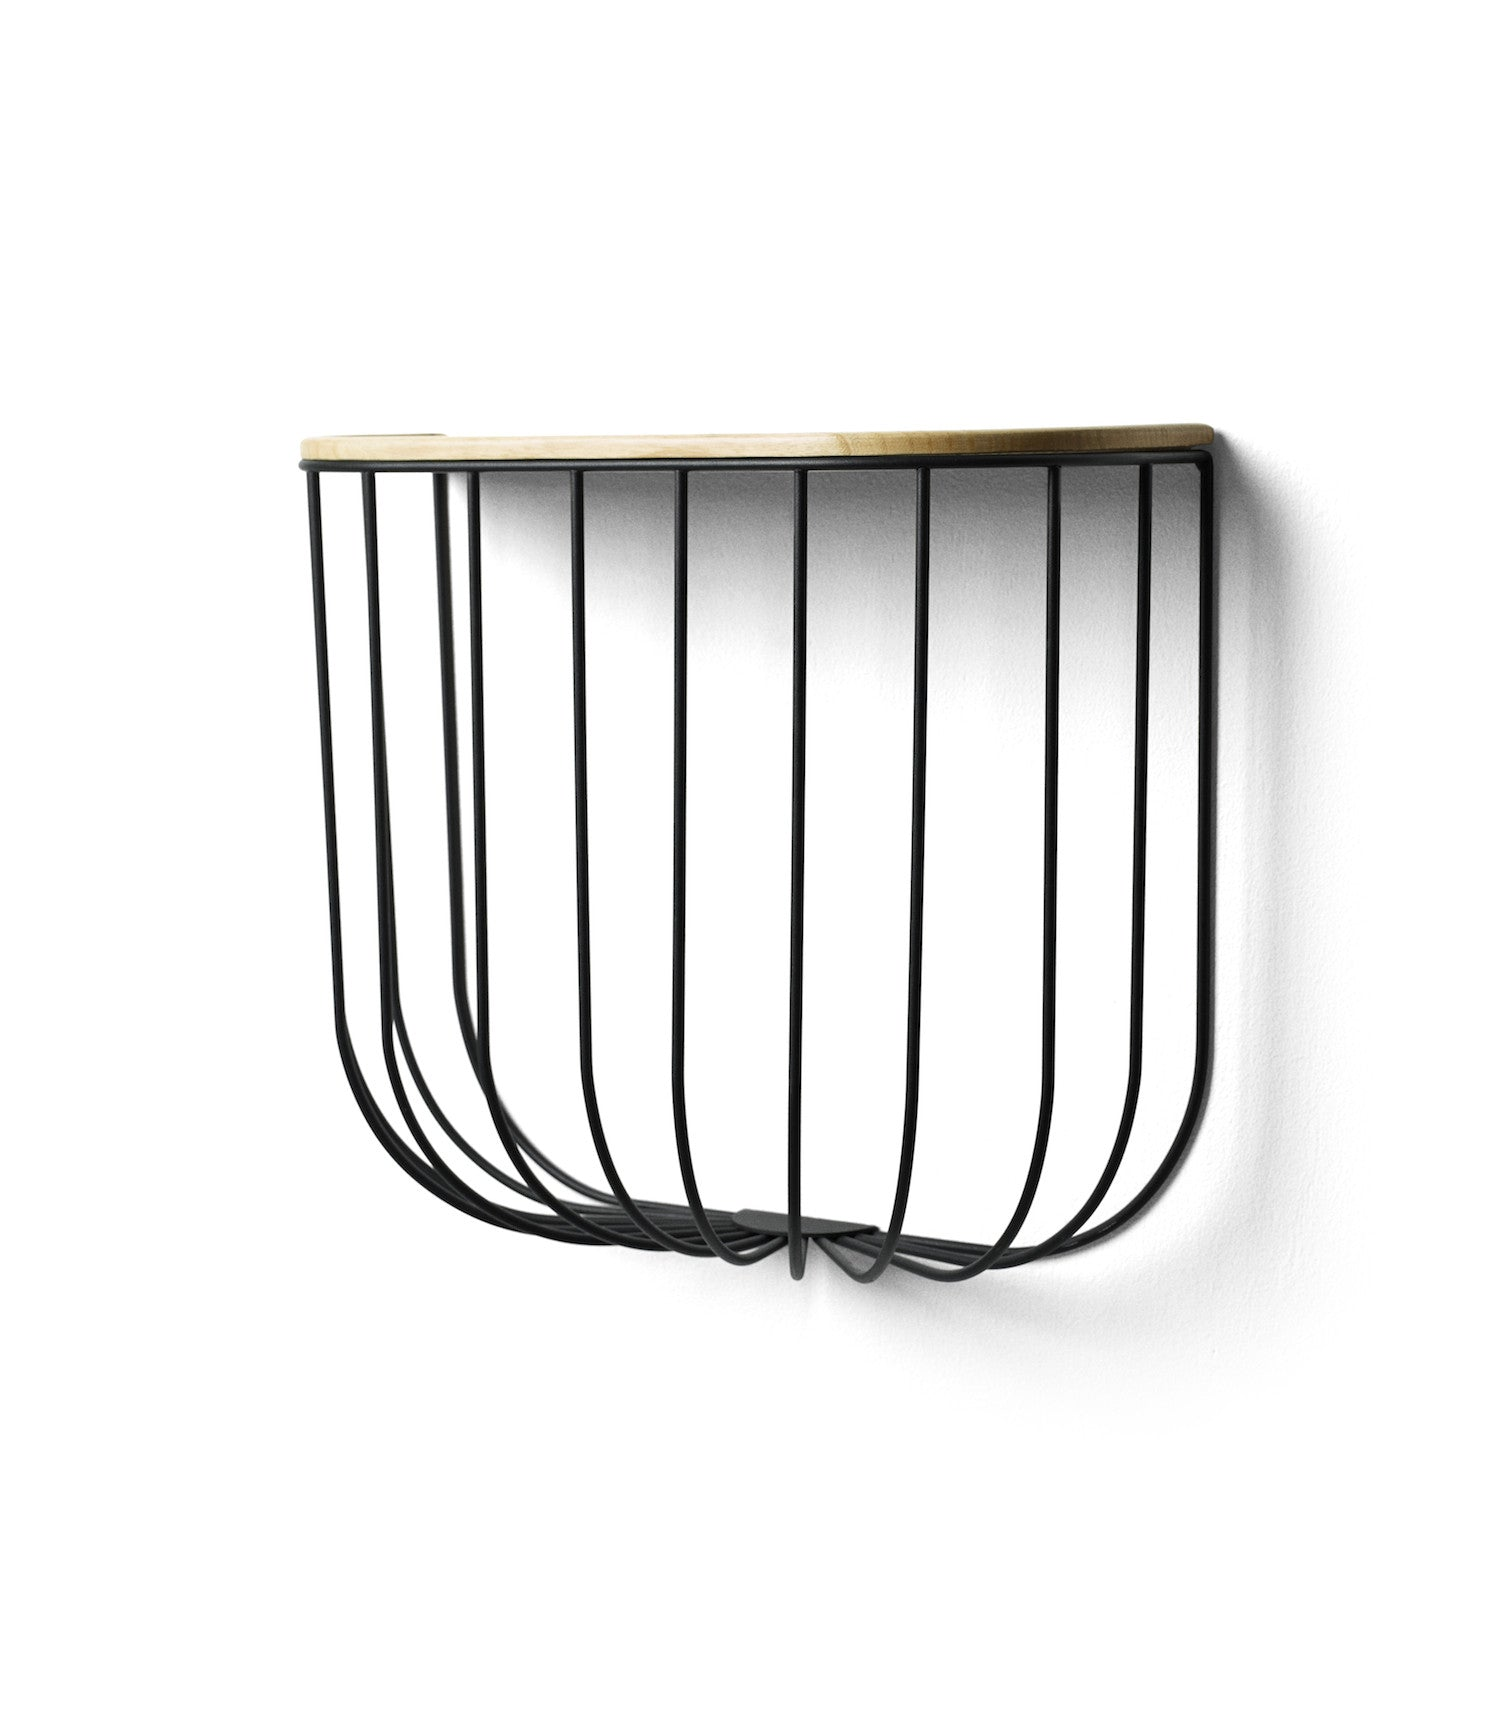 Cage Shelf design by Form Us With Love for Menu